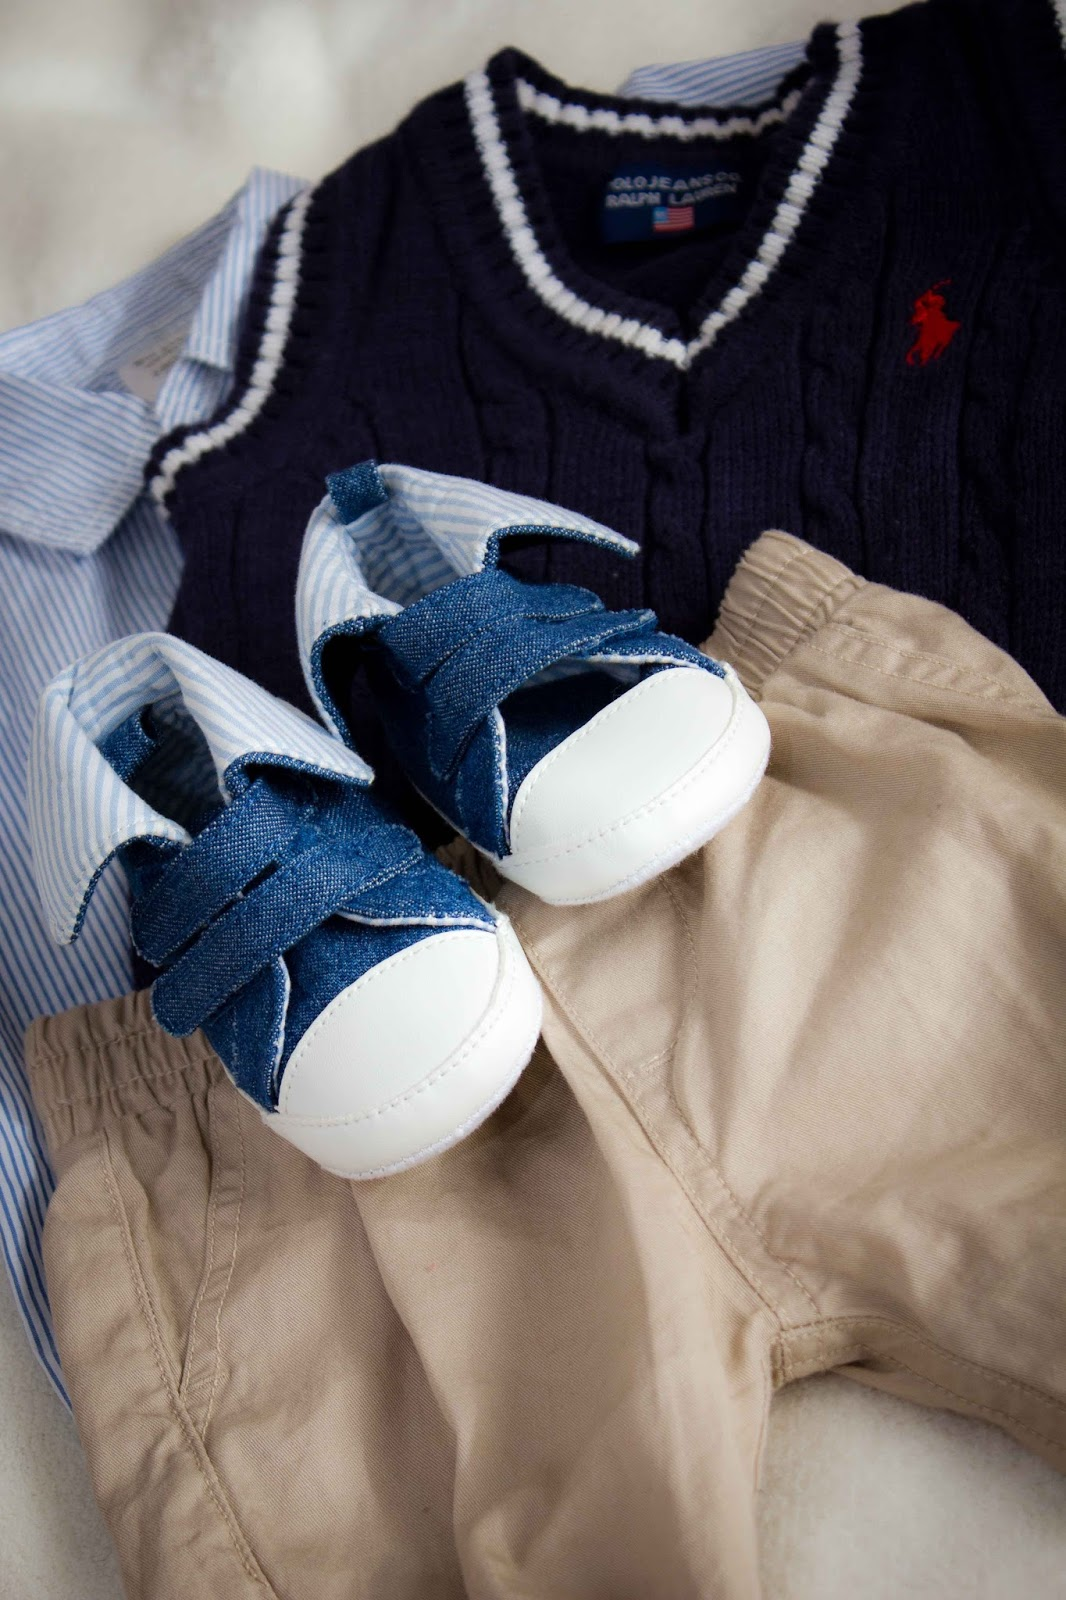 Baby clothes photograph